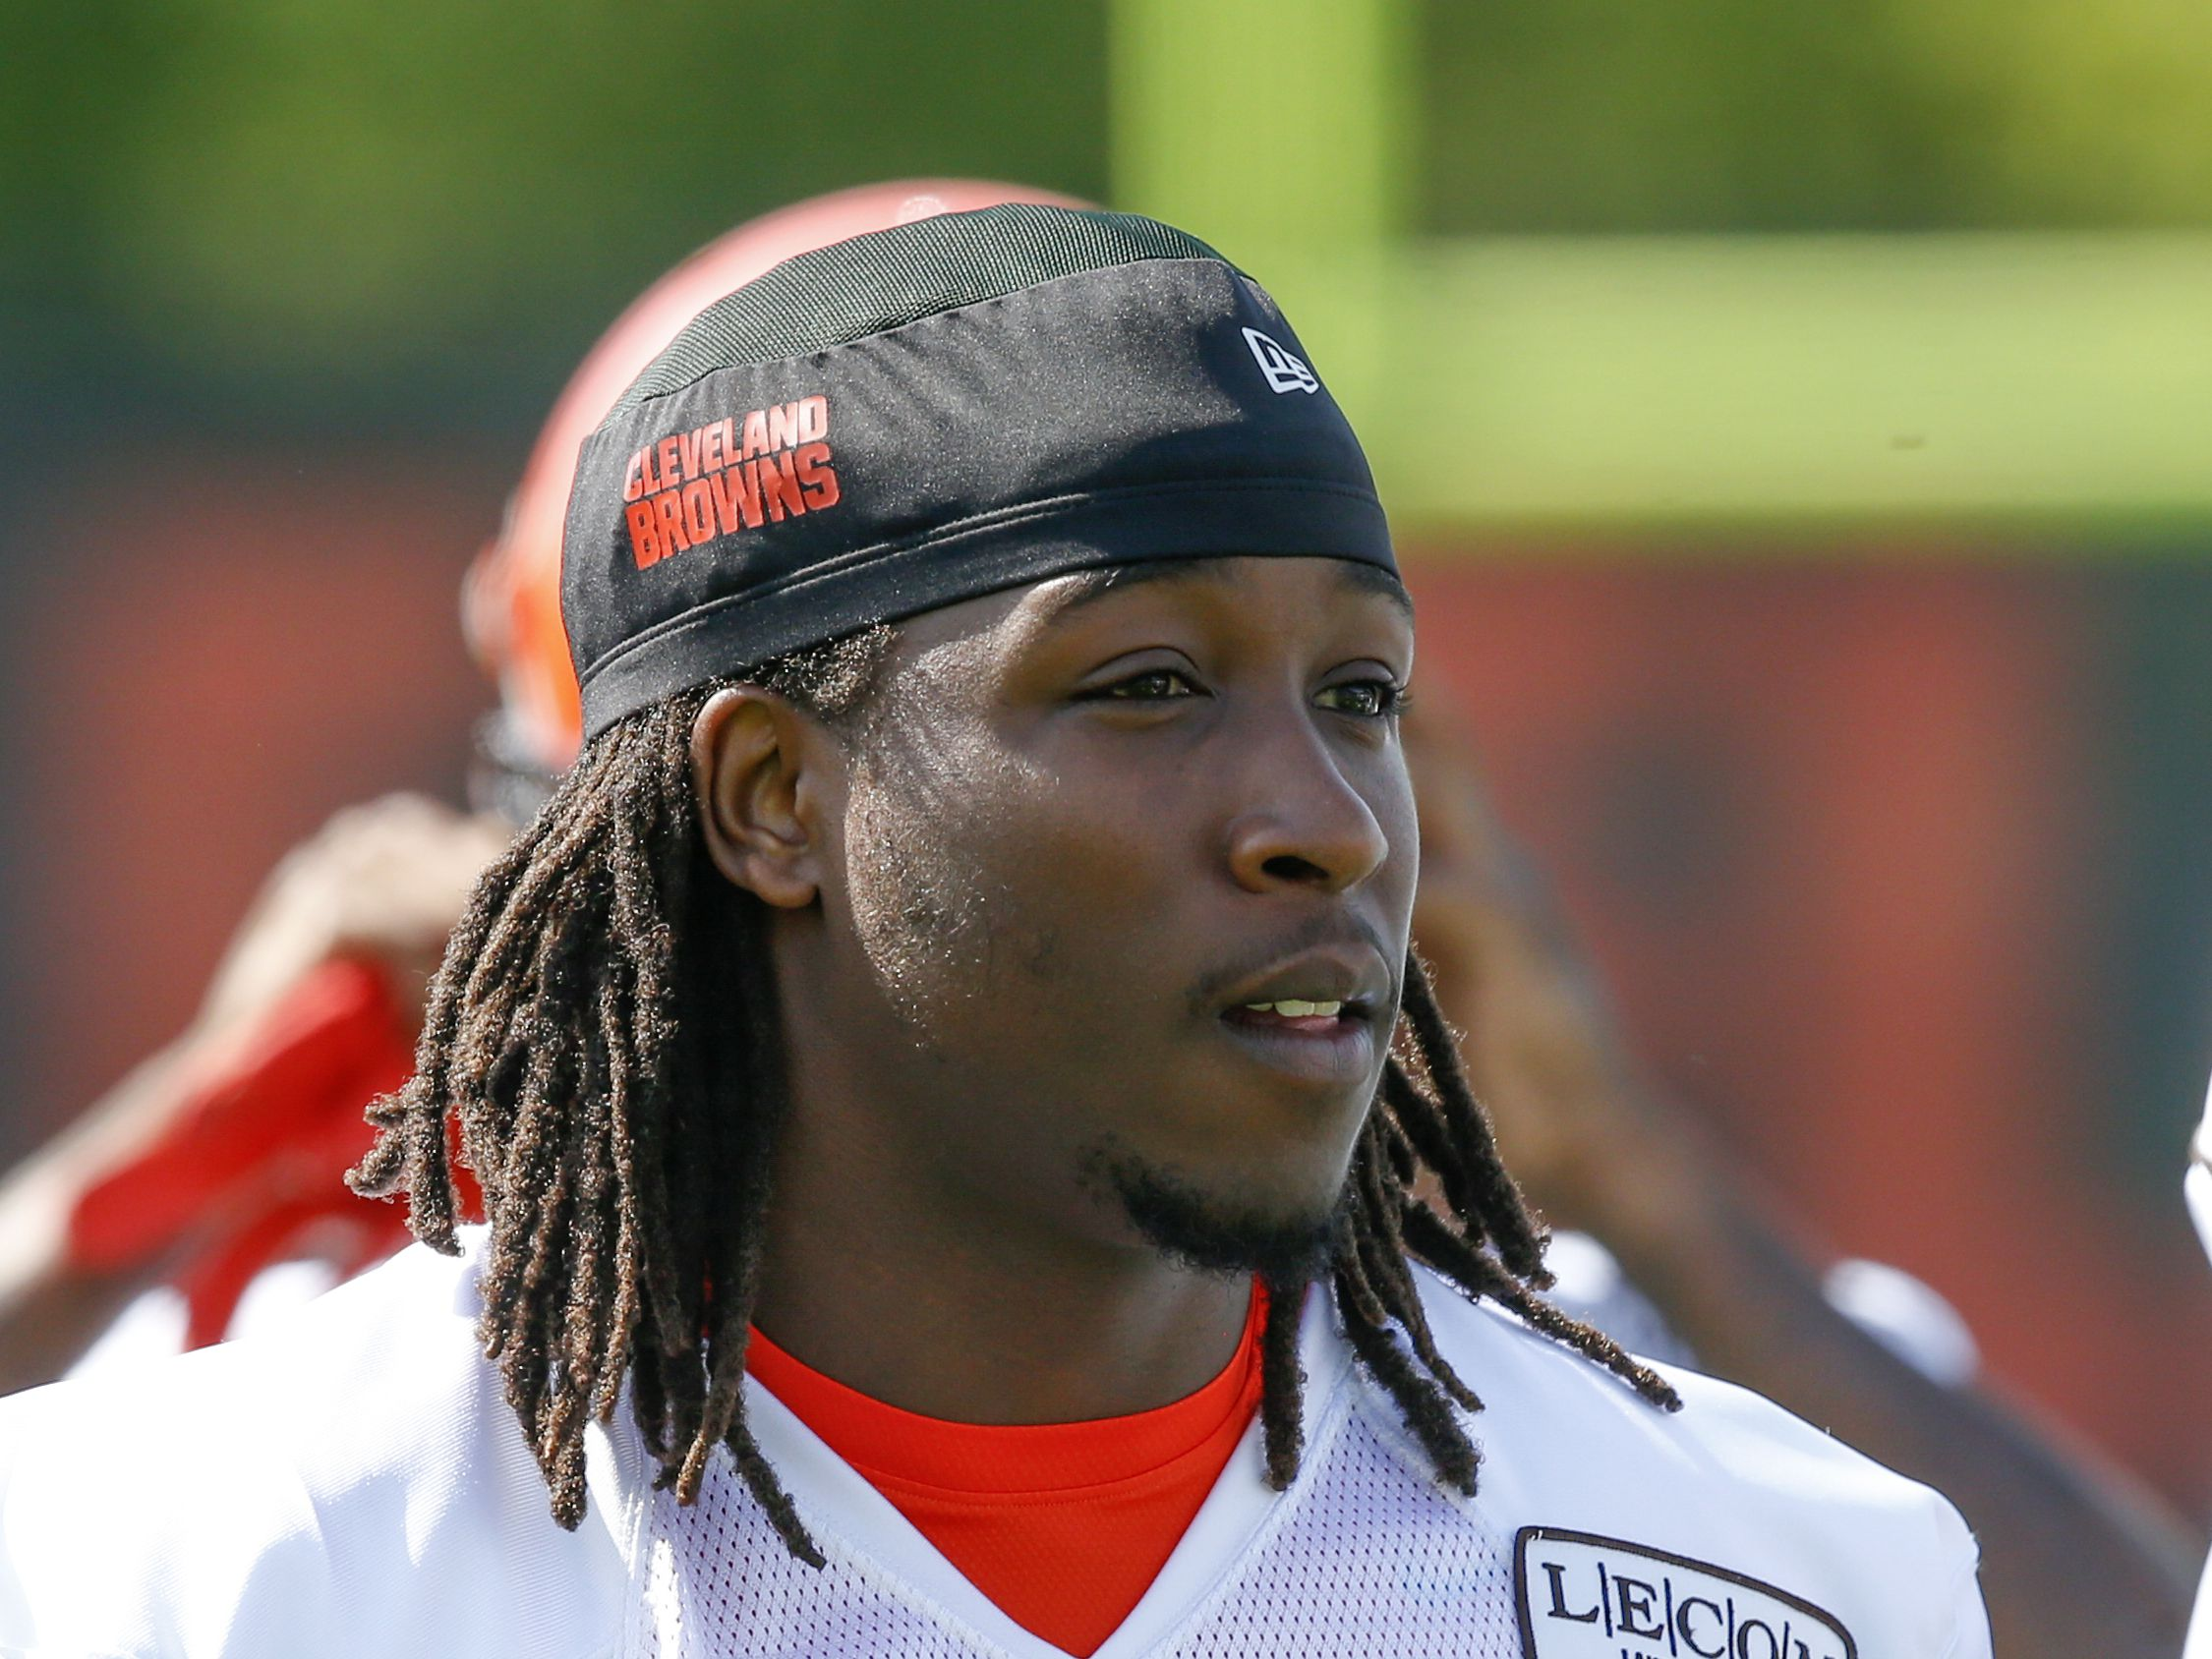 Cleveland Browns Kareem Hunt remorseful for off-the-field assault, wants to apologize to victim face to face